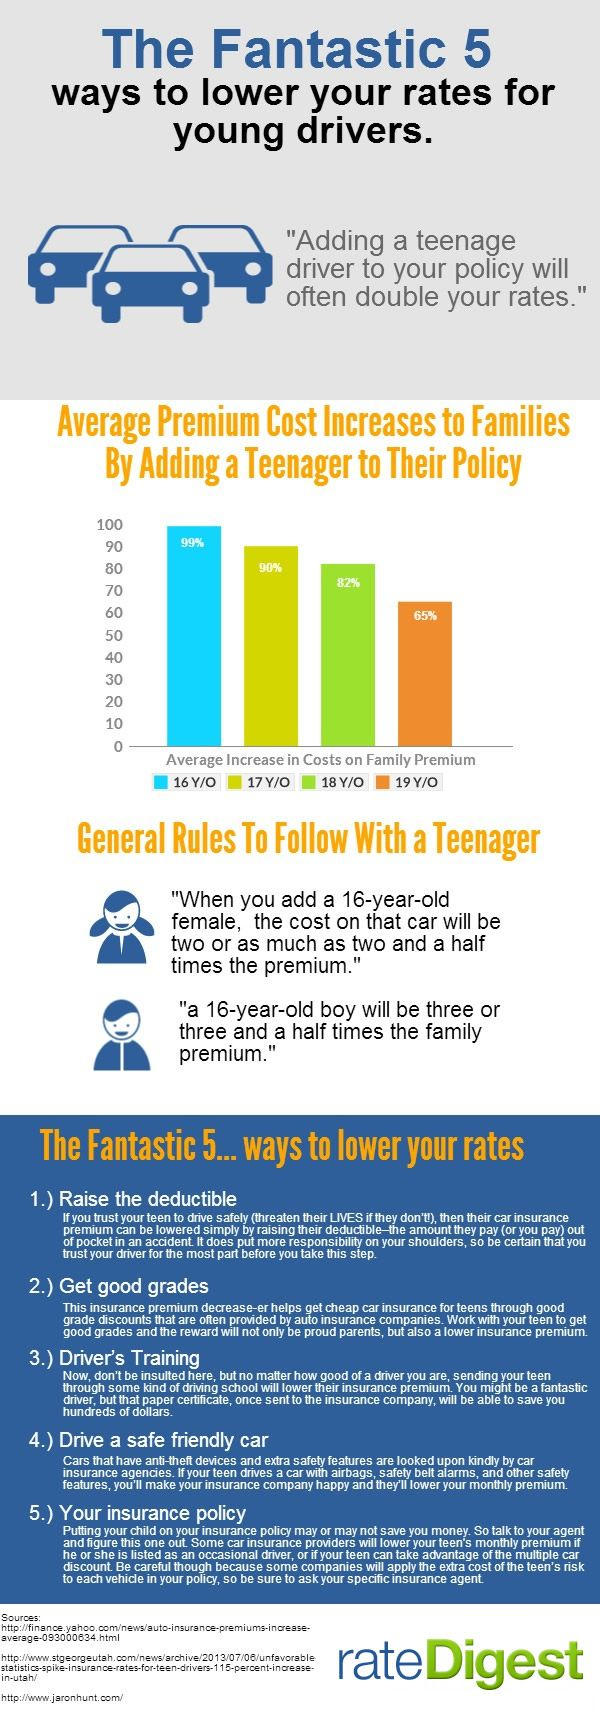 Rate Digest Provides Their Popular Fantastic 5 Infographic That Details How Families Can Keep Their Car In Car For Teens Car Insurance Rates Car Insurance Tips